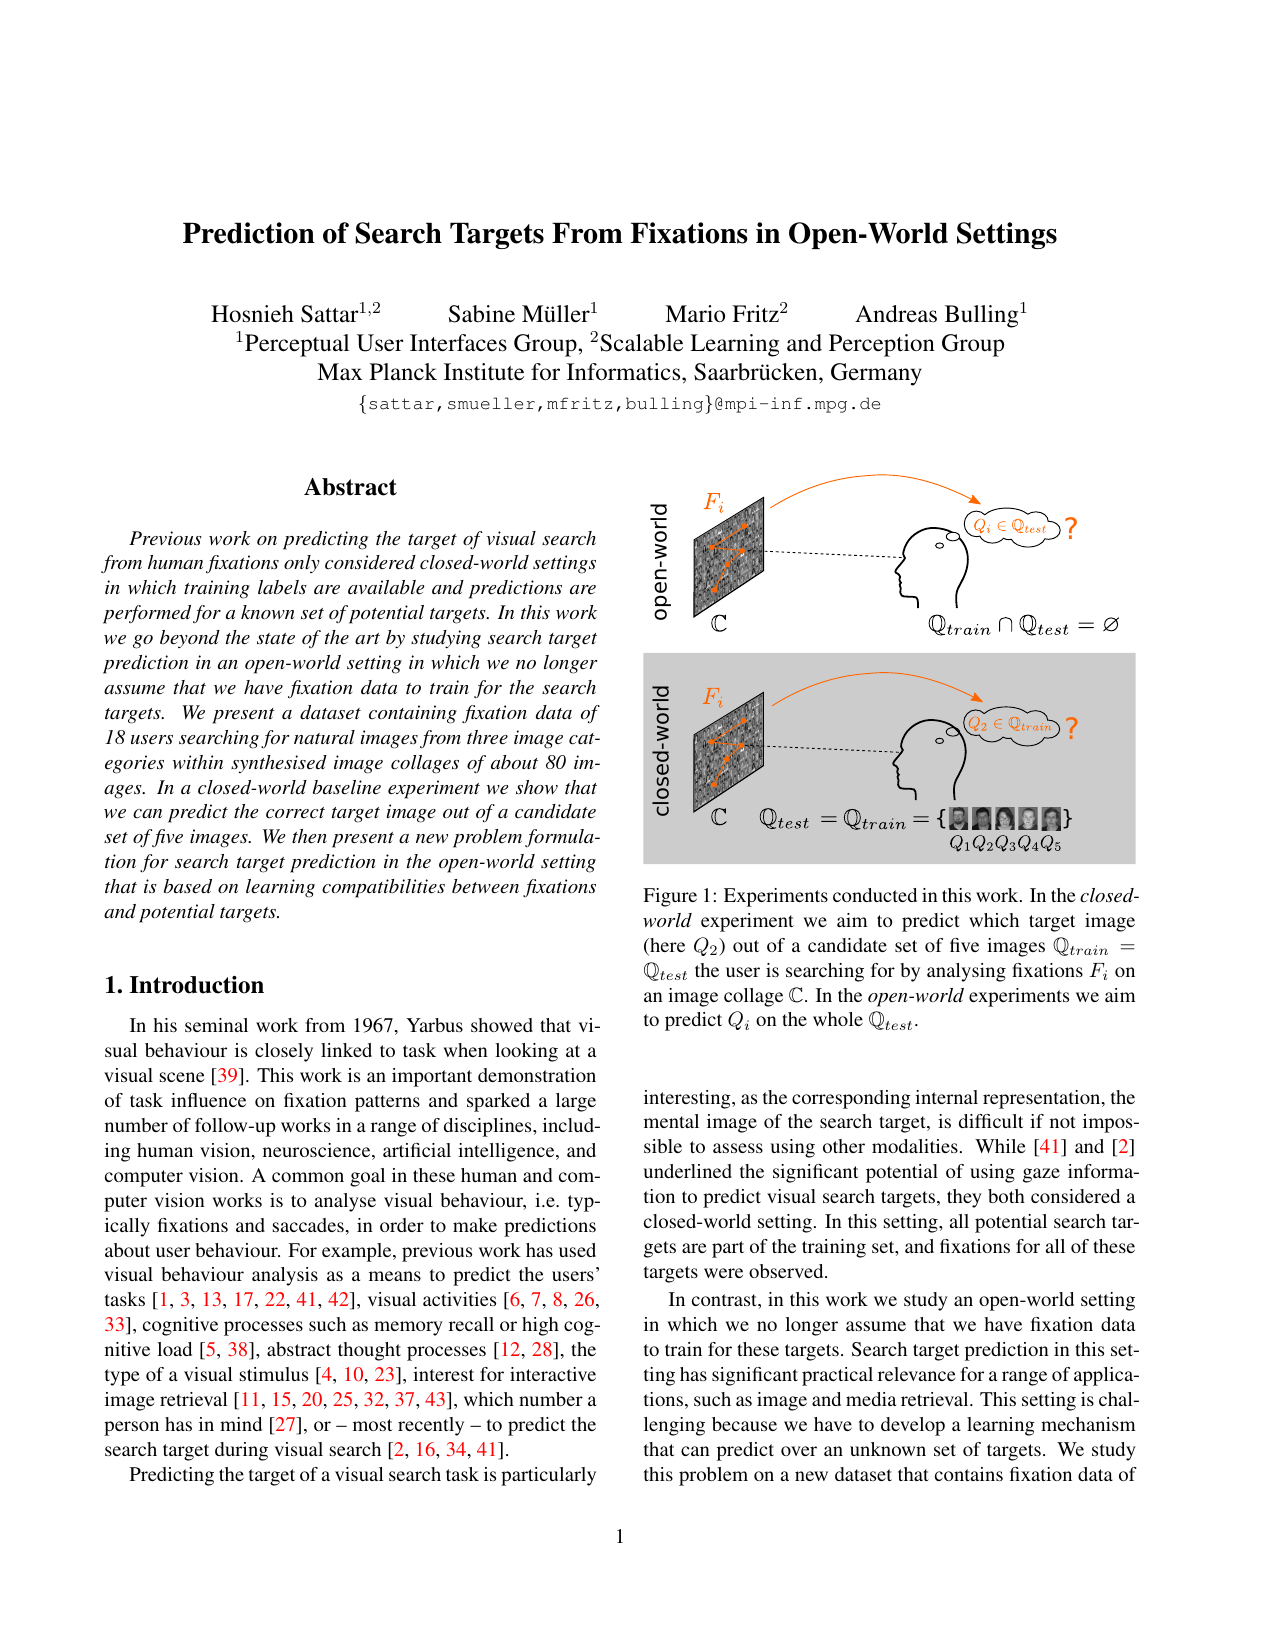 Prediction of Search Targets From Fixations in Open-world Settings